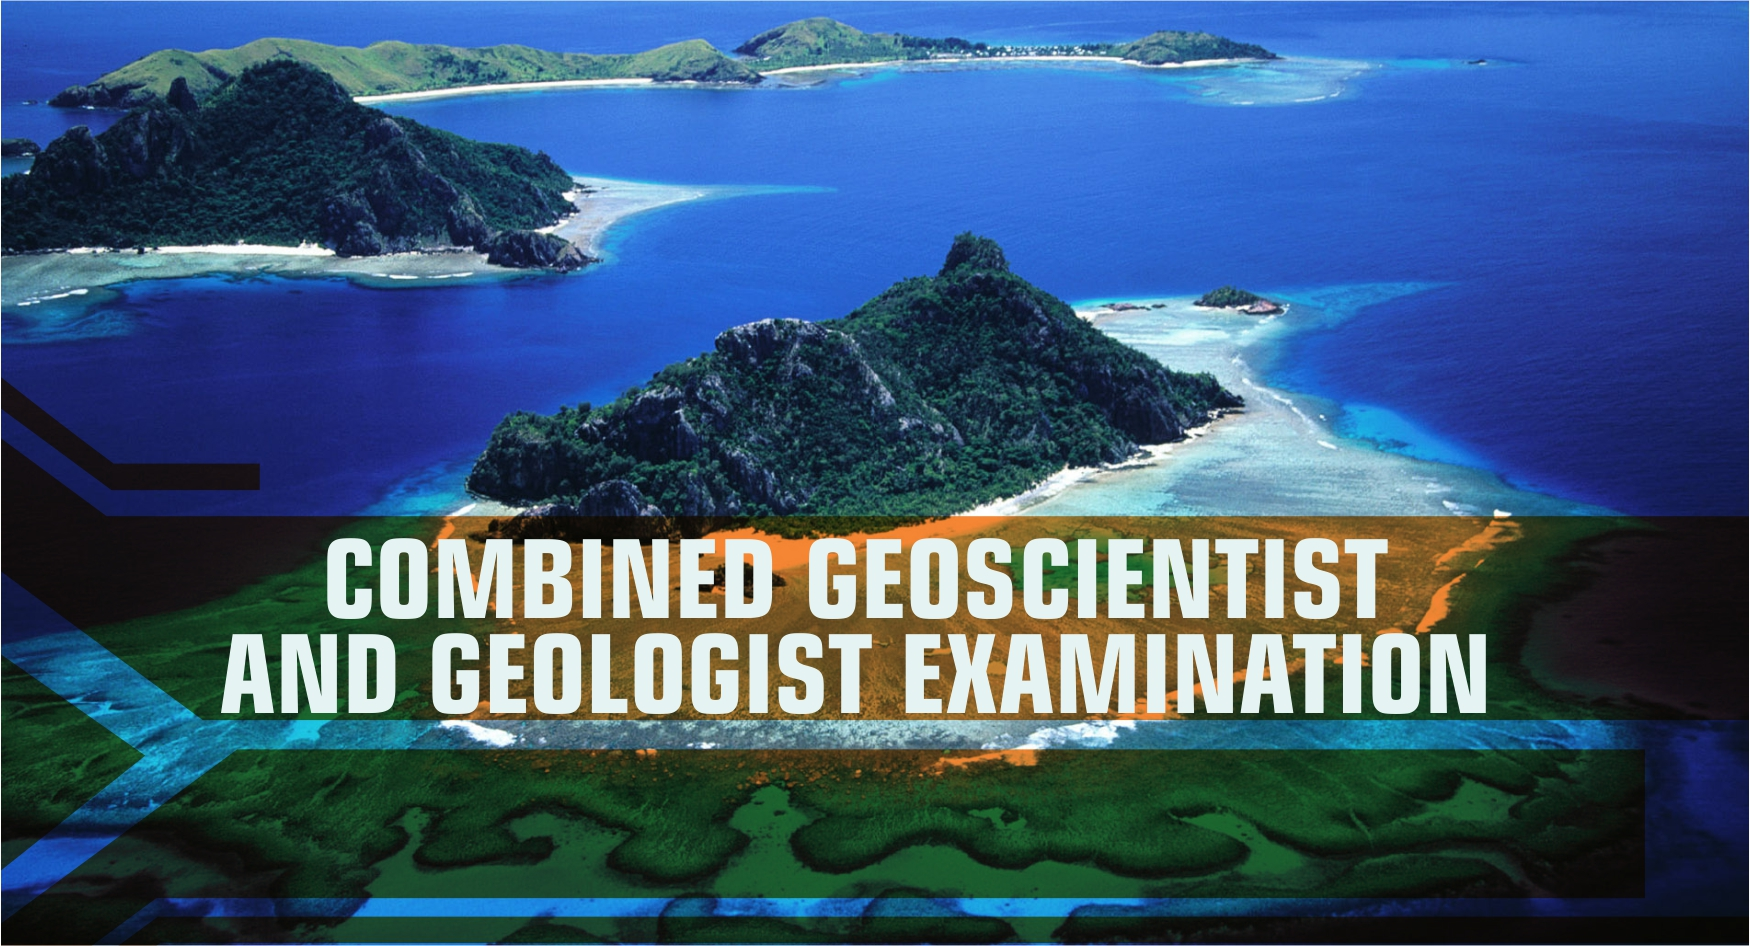 Exams under UPSC - Combined Geo-scientist and Geologist Examination